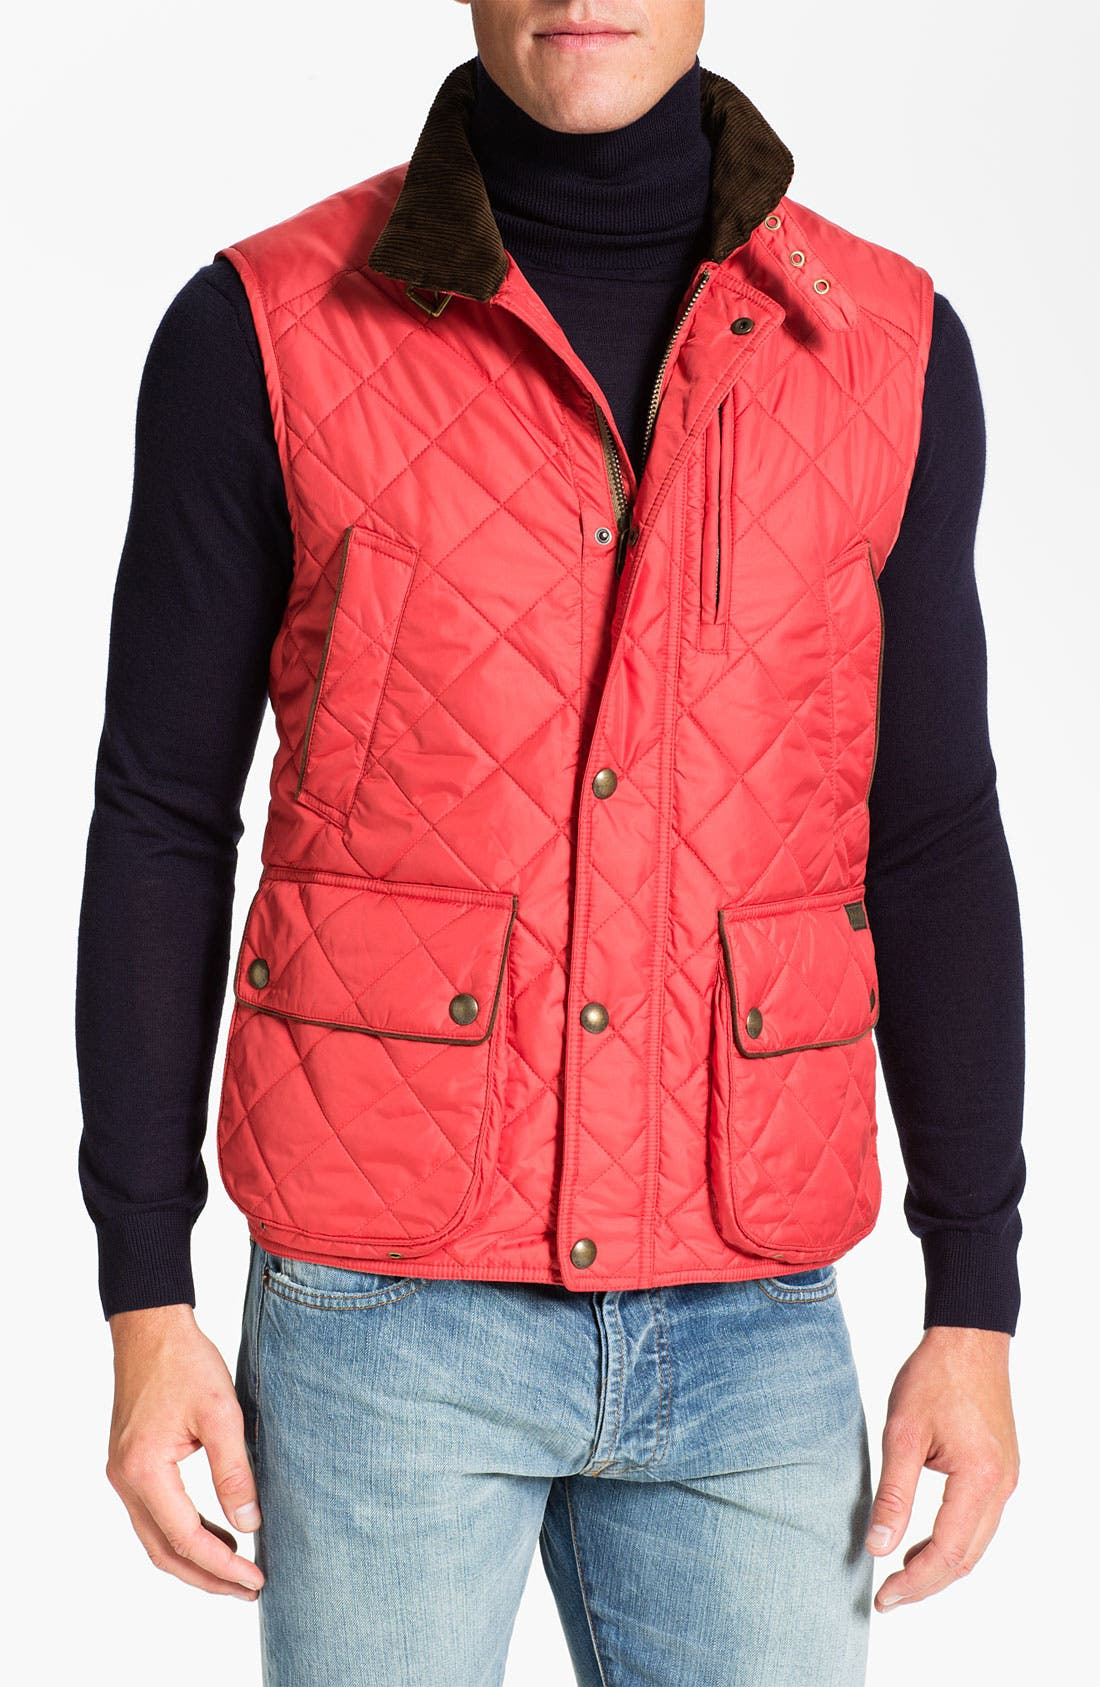 Main Image - Polo Ralph Lauren Classic Fit Quilted Vest